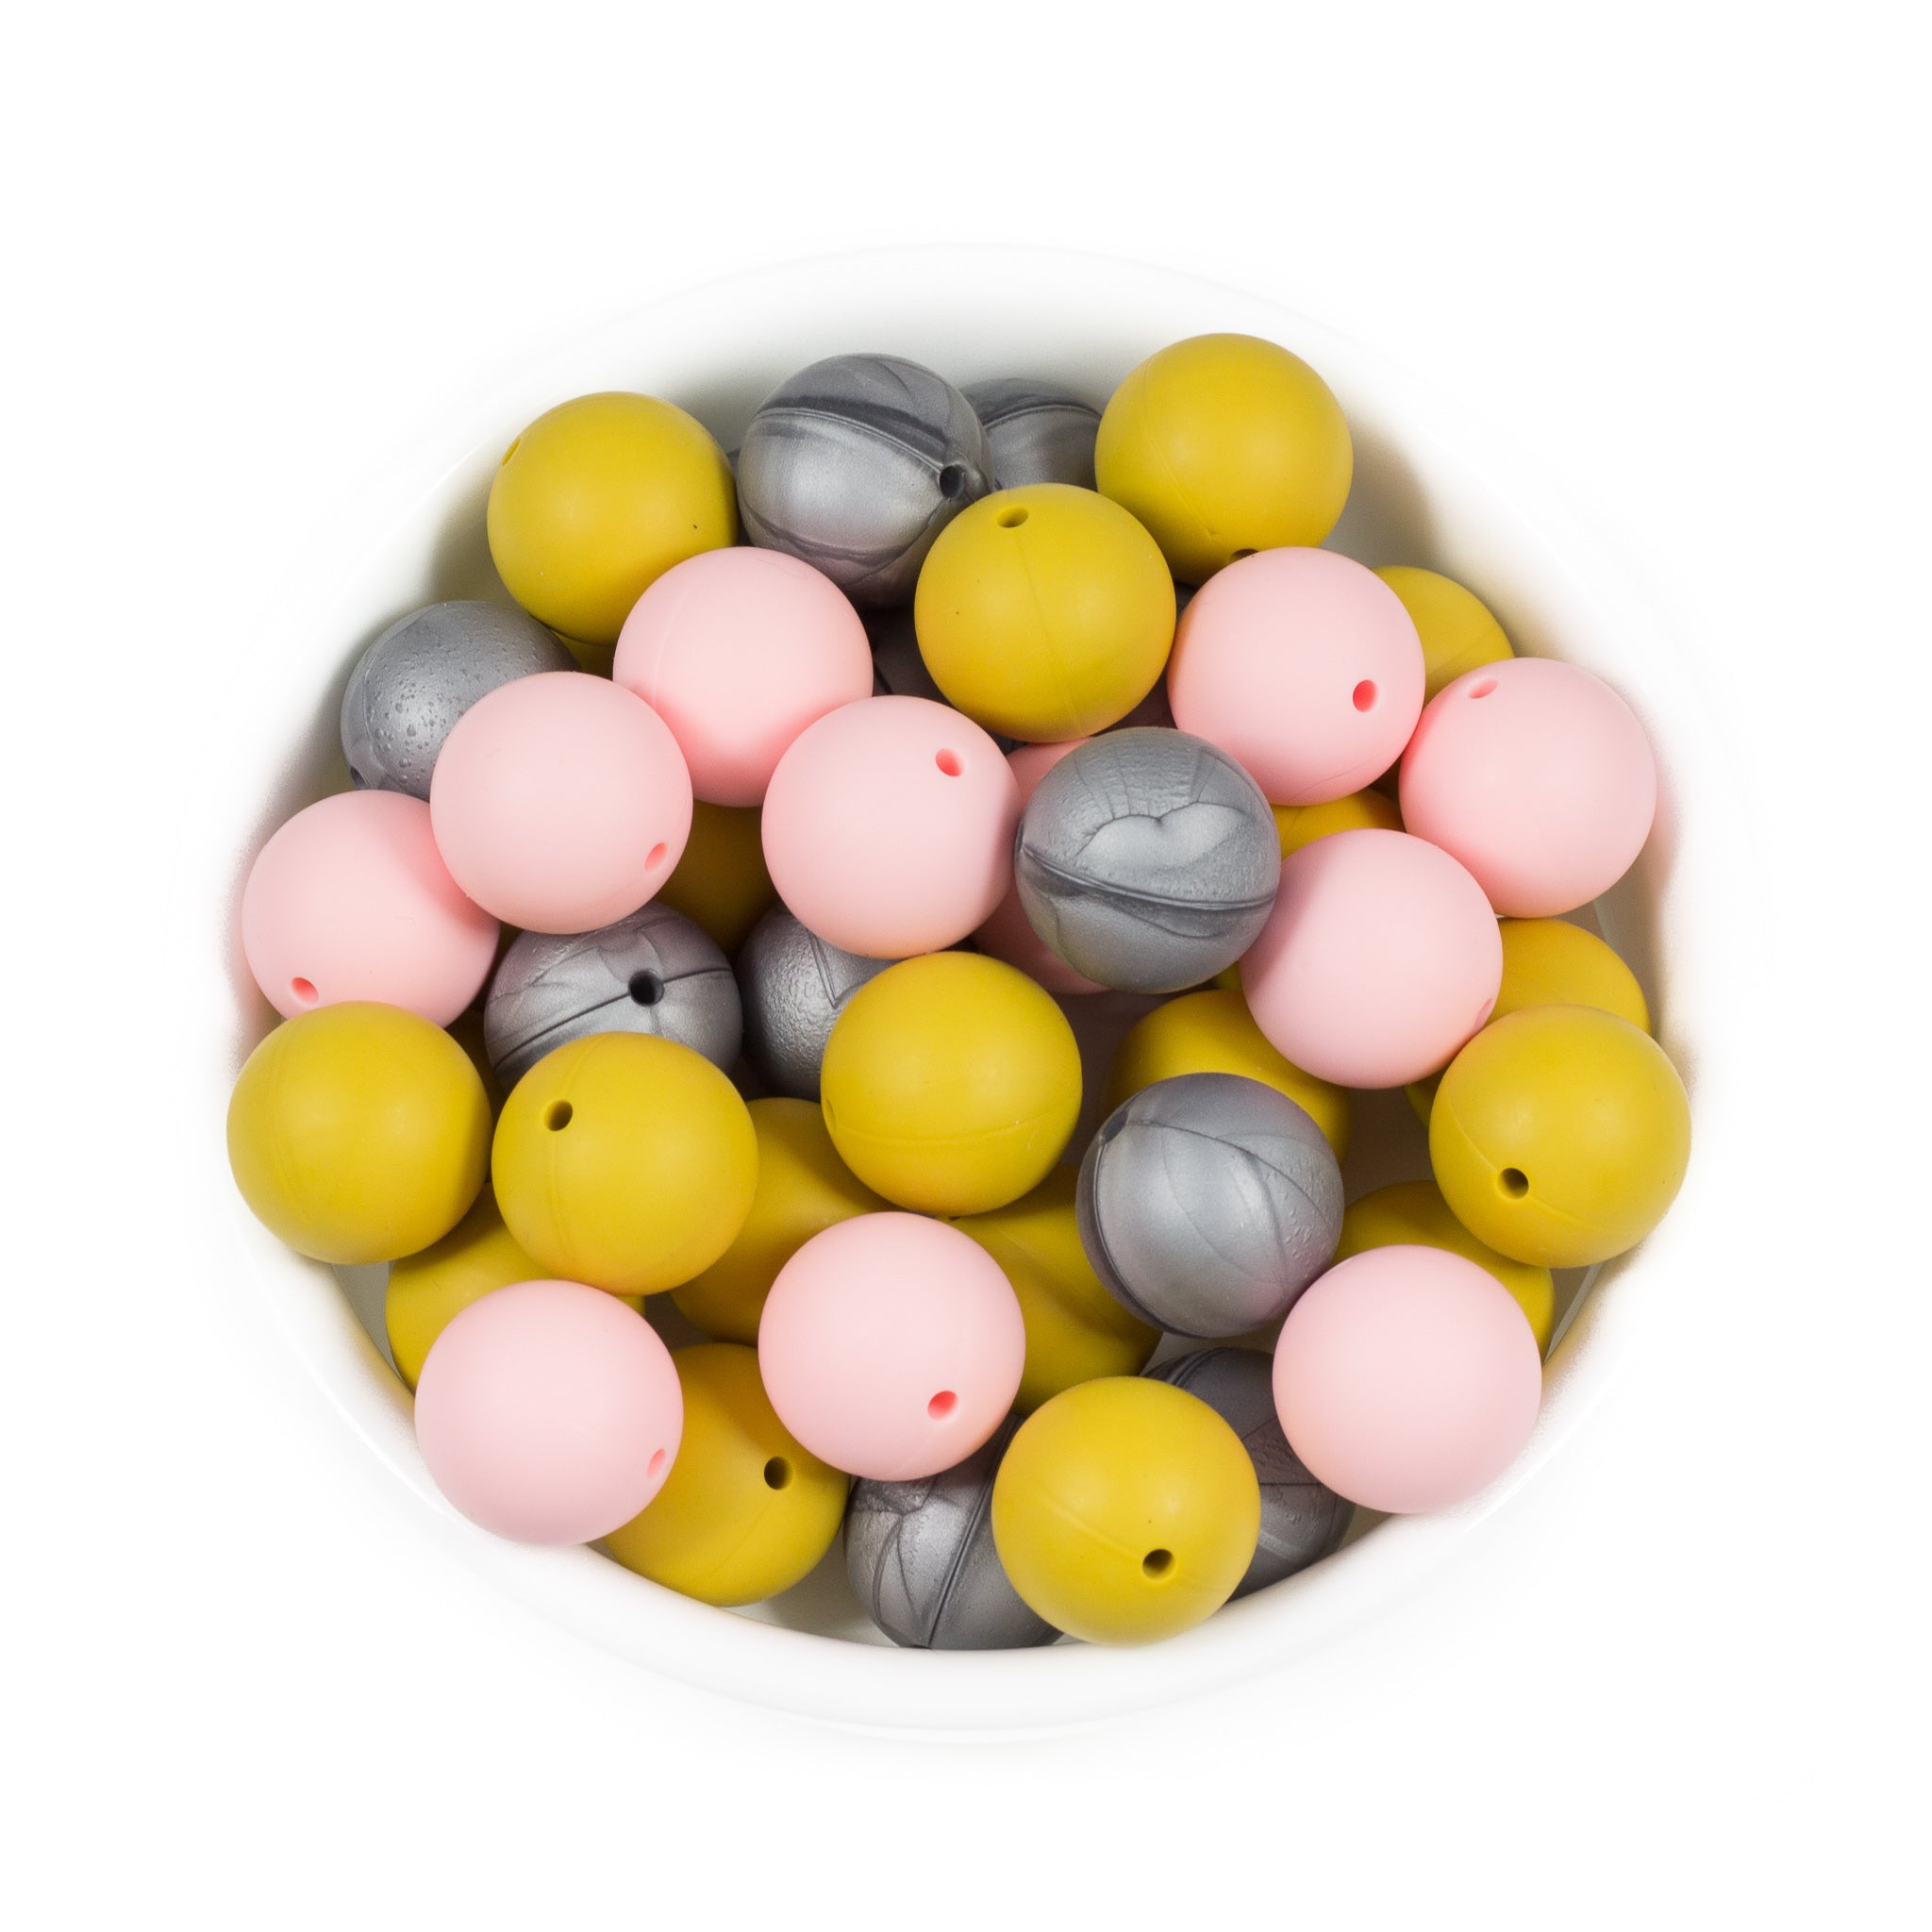 Round 19mm - Chomp Chew Bead Designs - Wholesale Silicone Beads for Teething and DIY Chewelry Making